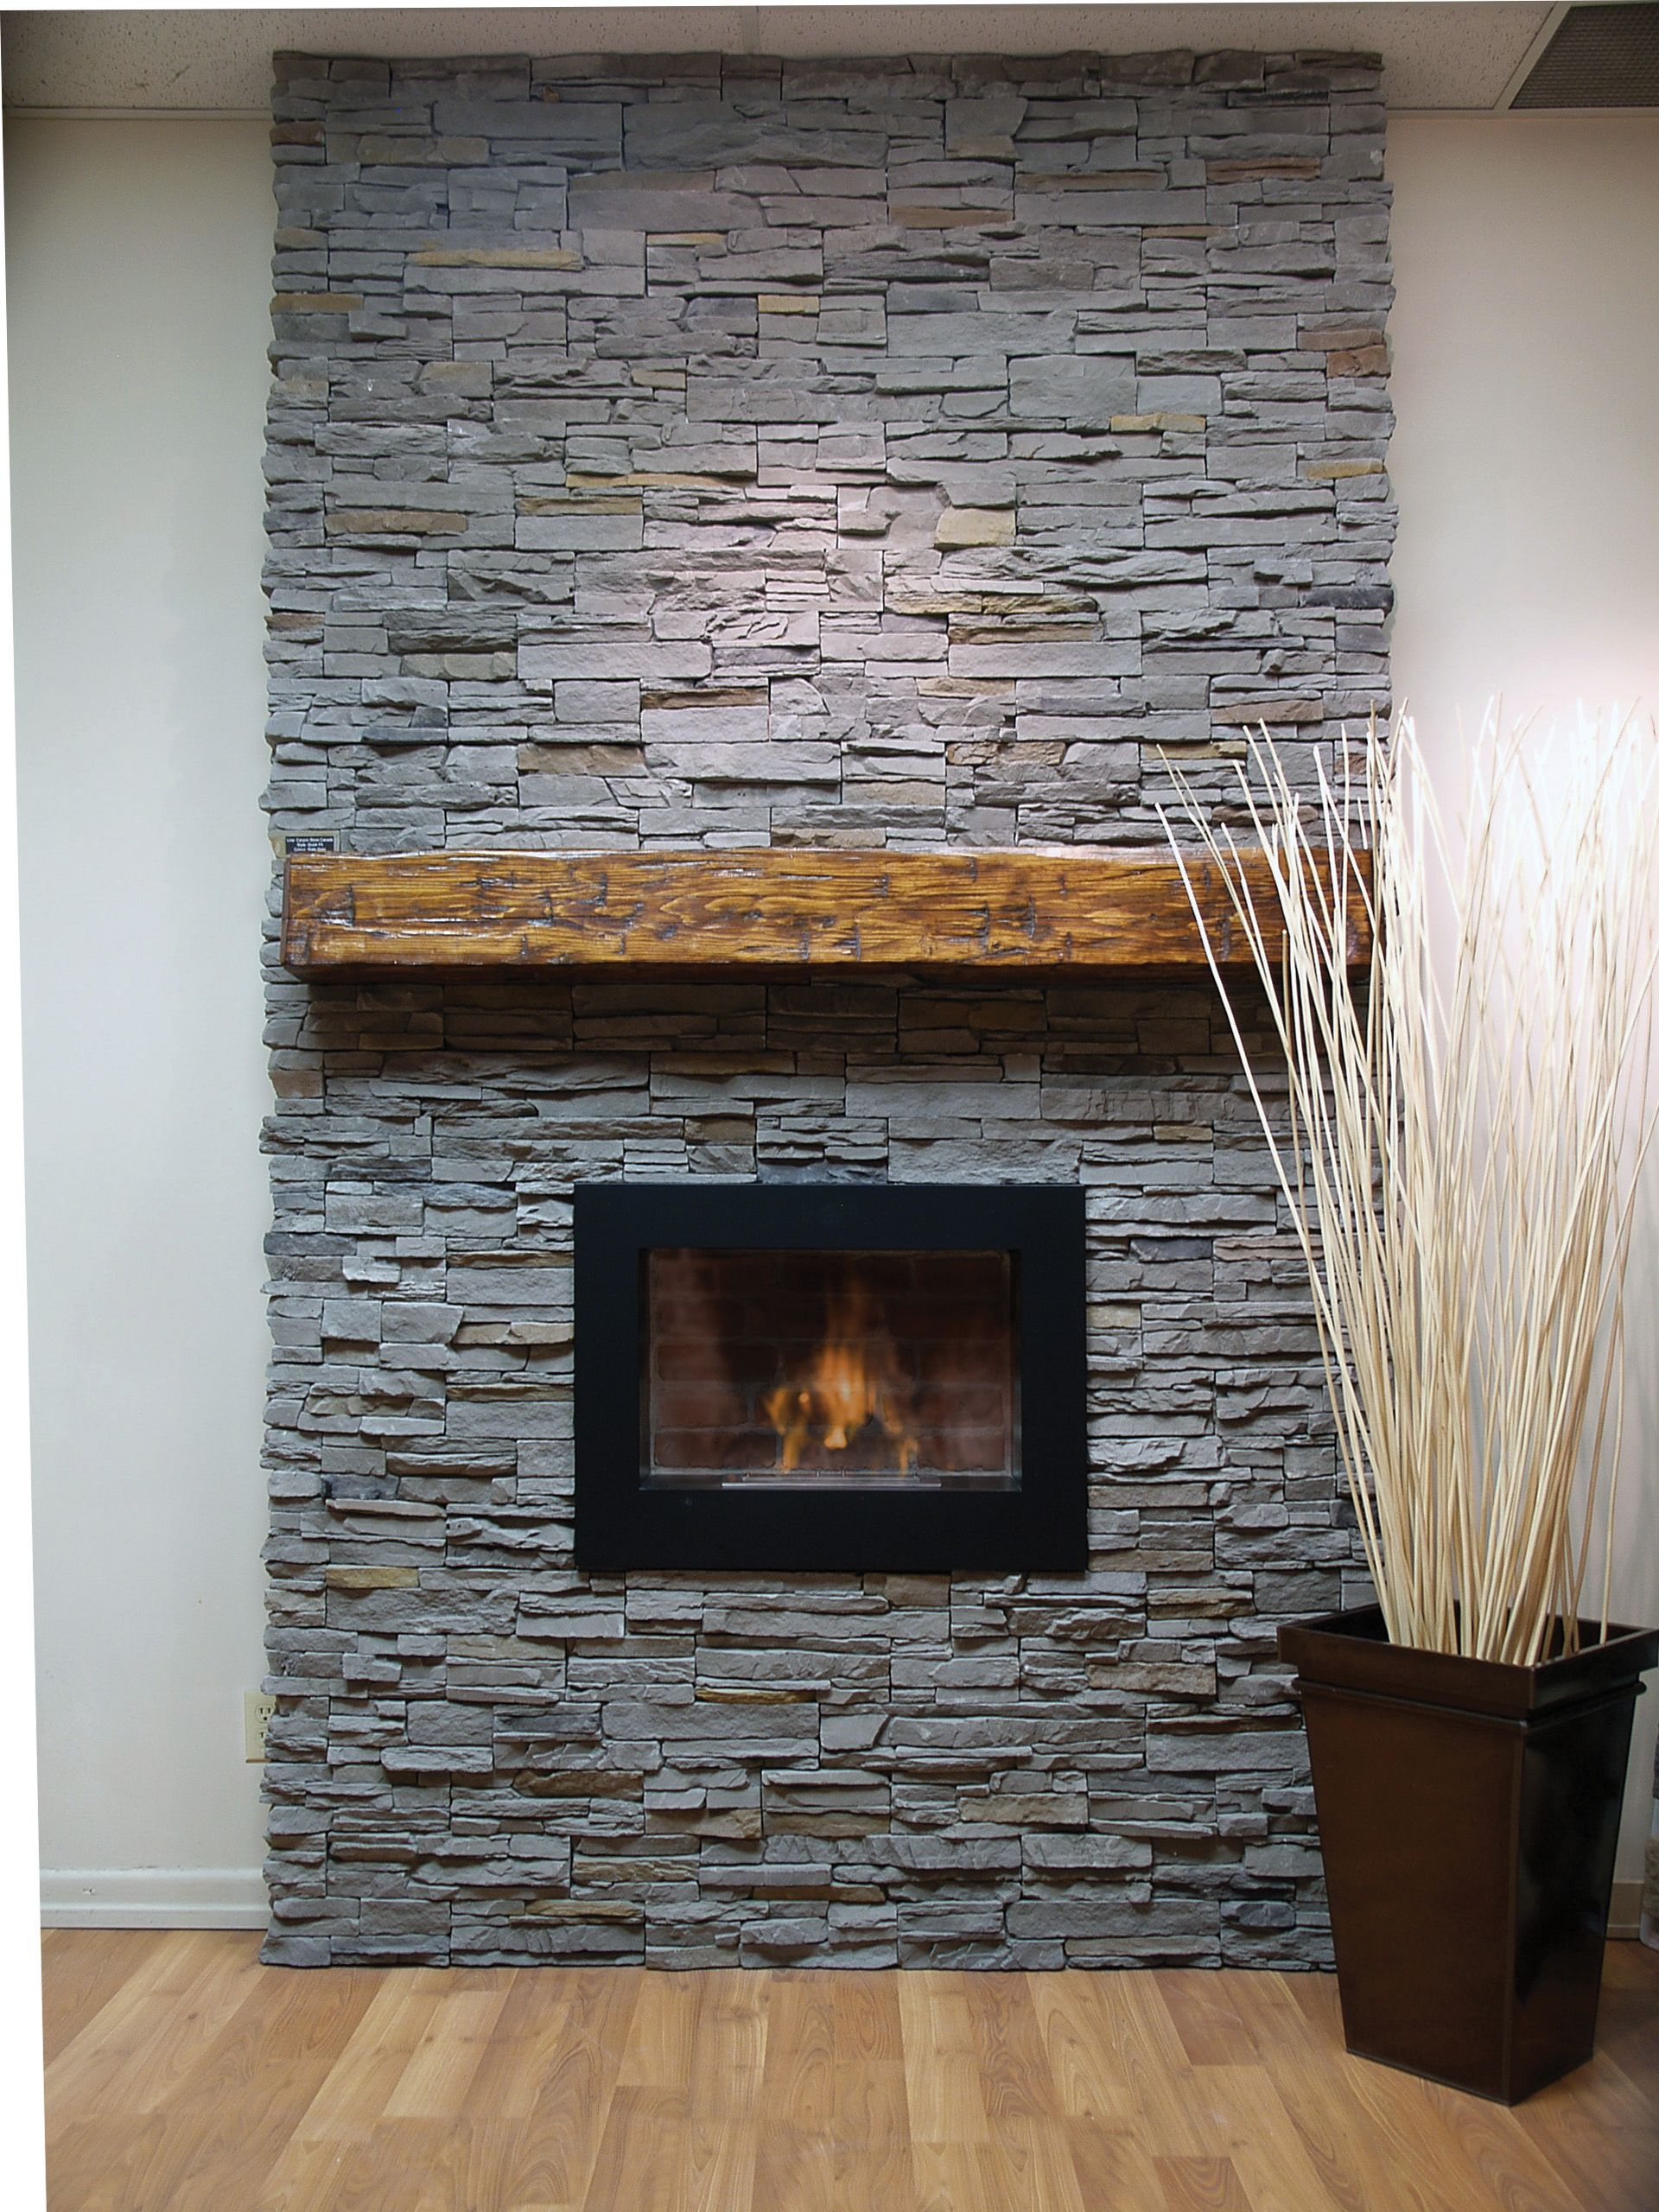 Fireplace With Panel Stone Veneers  Project Of Stone Selex Inc.